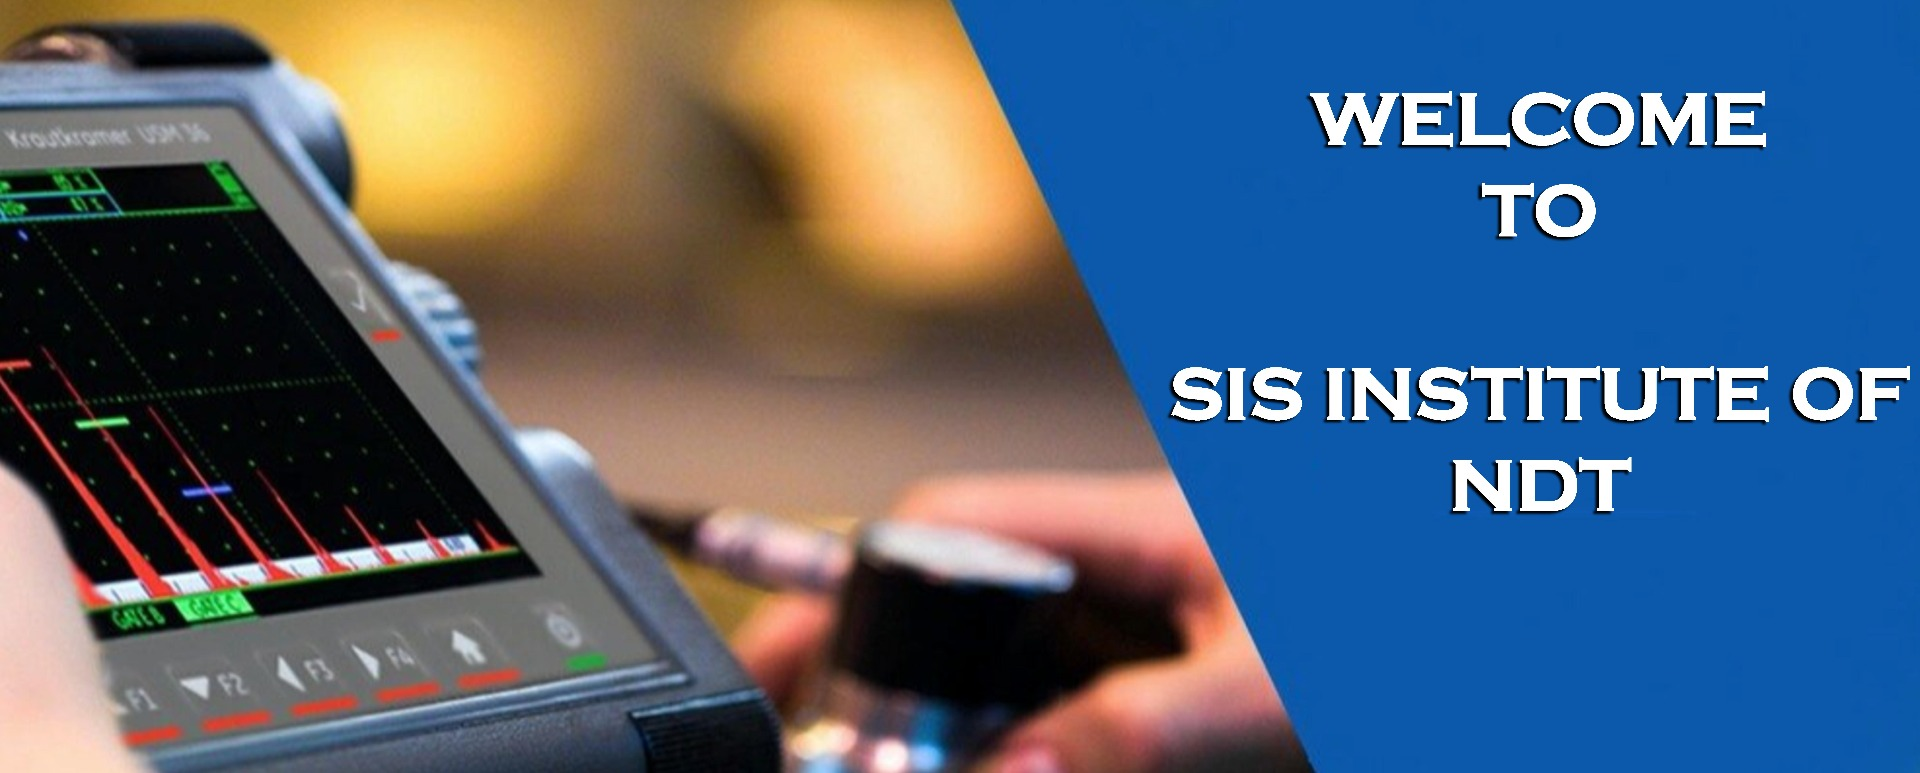 SIS Institute Of NDT - Inspection Technology and NDT Resources Institute in Ashok Nagar, Chennai